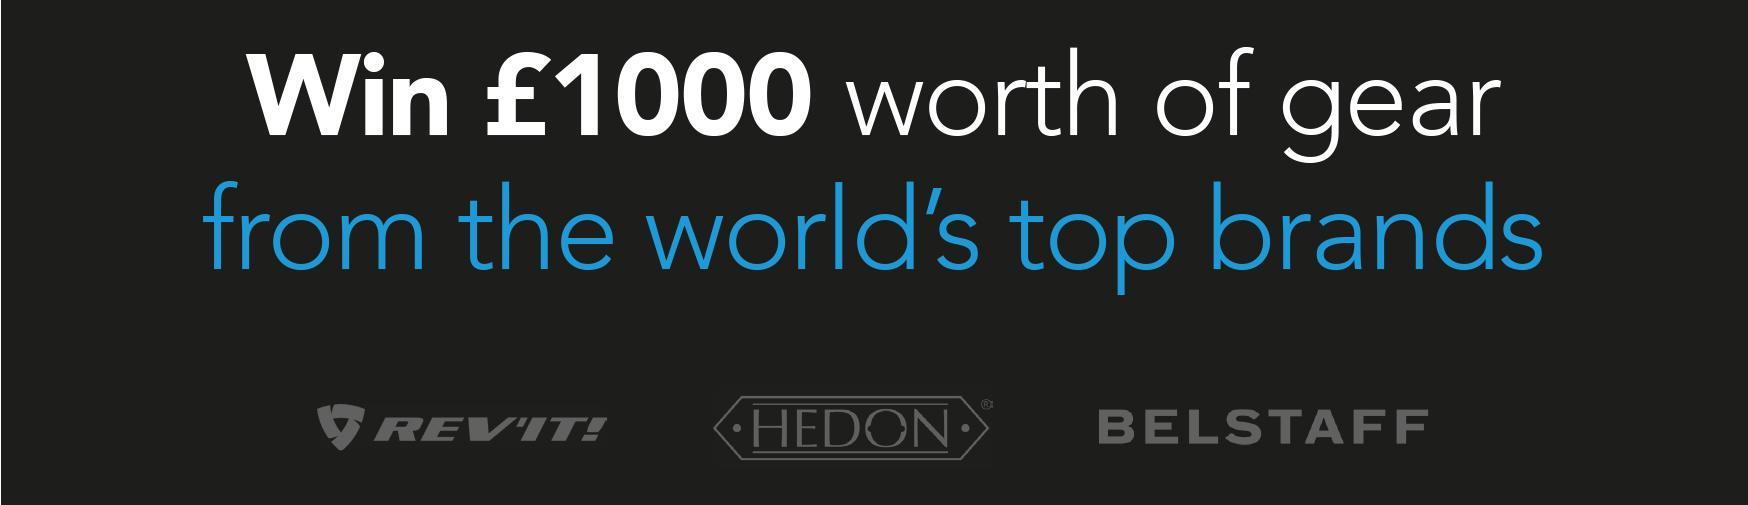 Win £1000 worth of gear from the worlds top brands